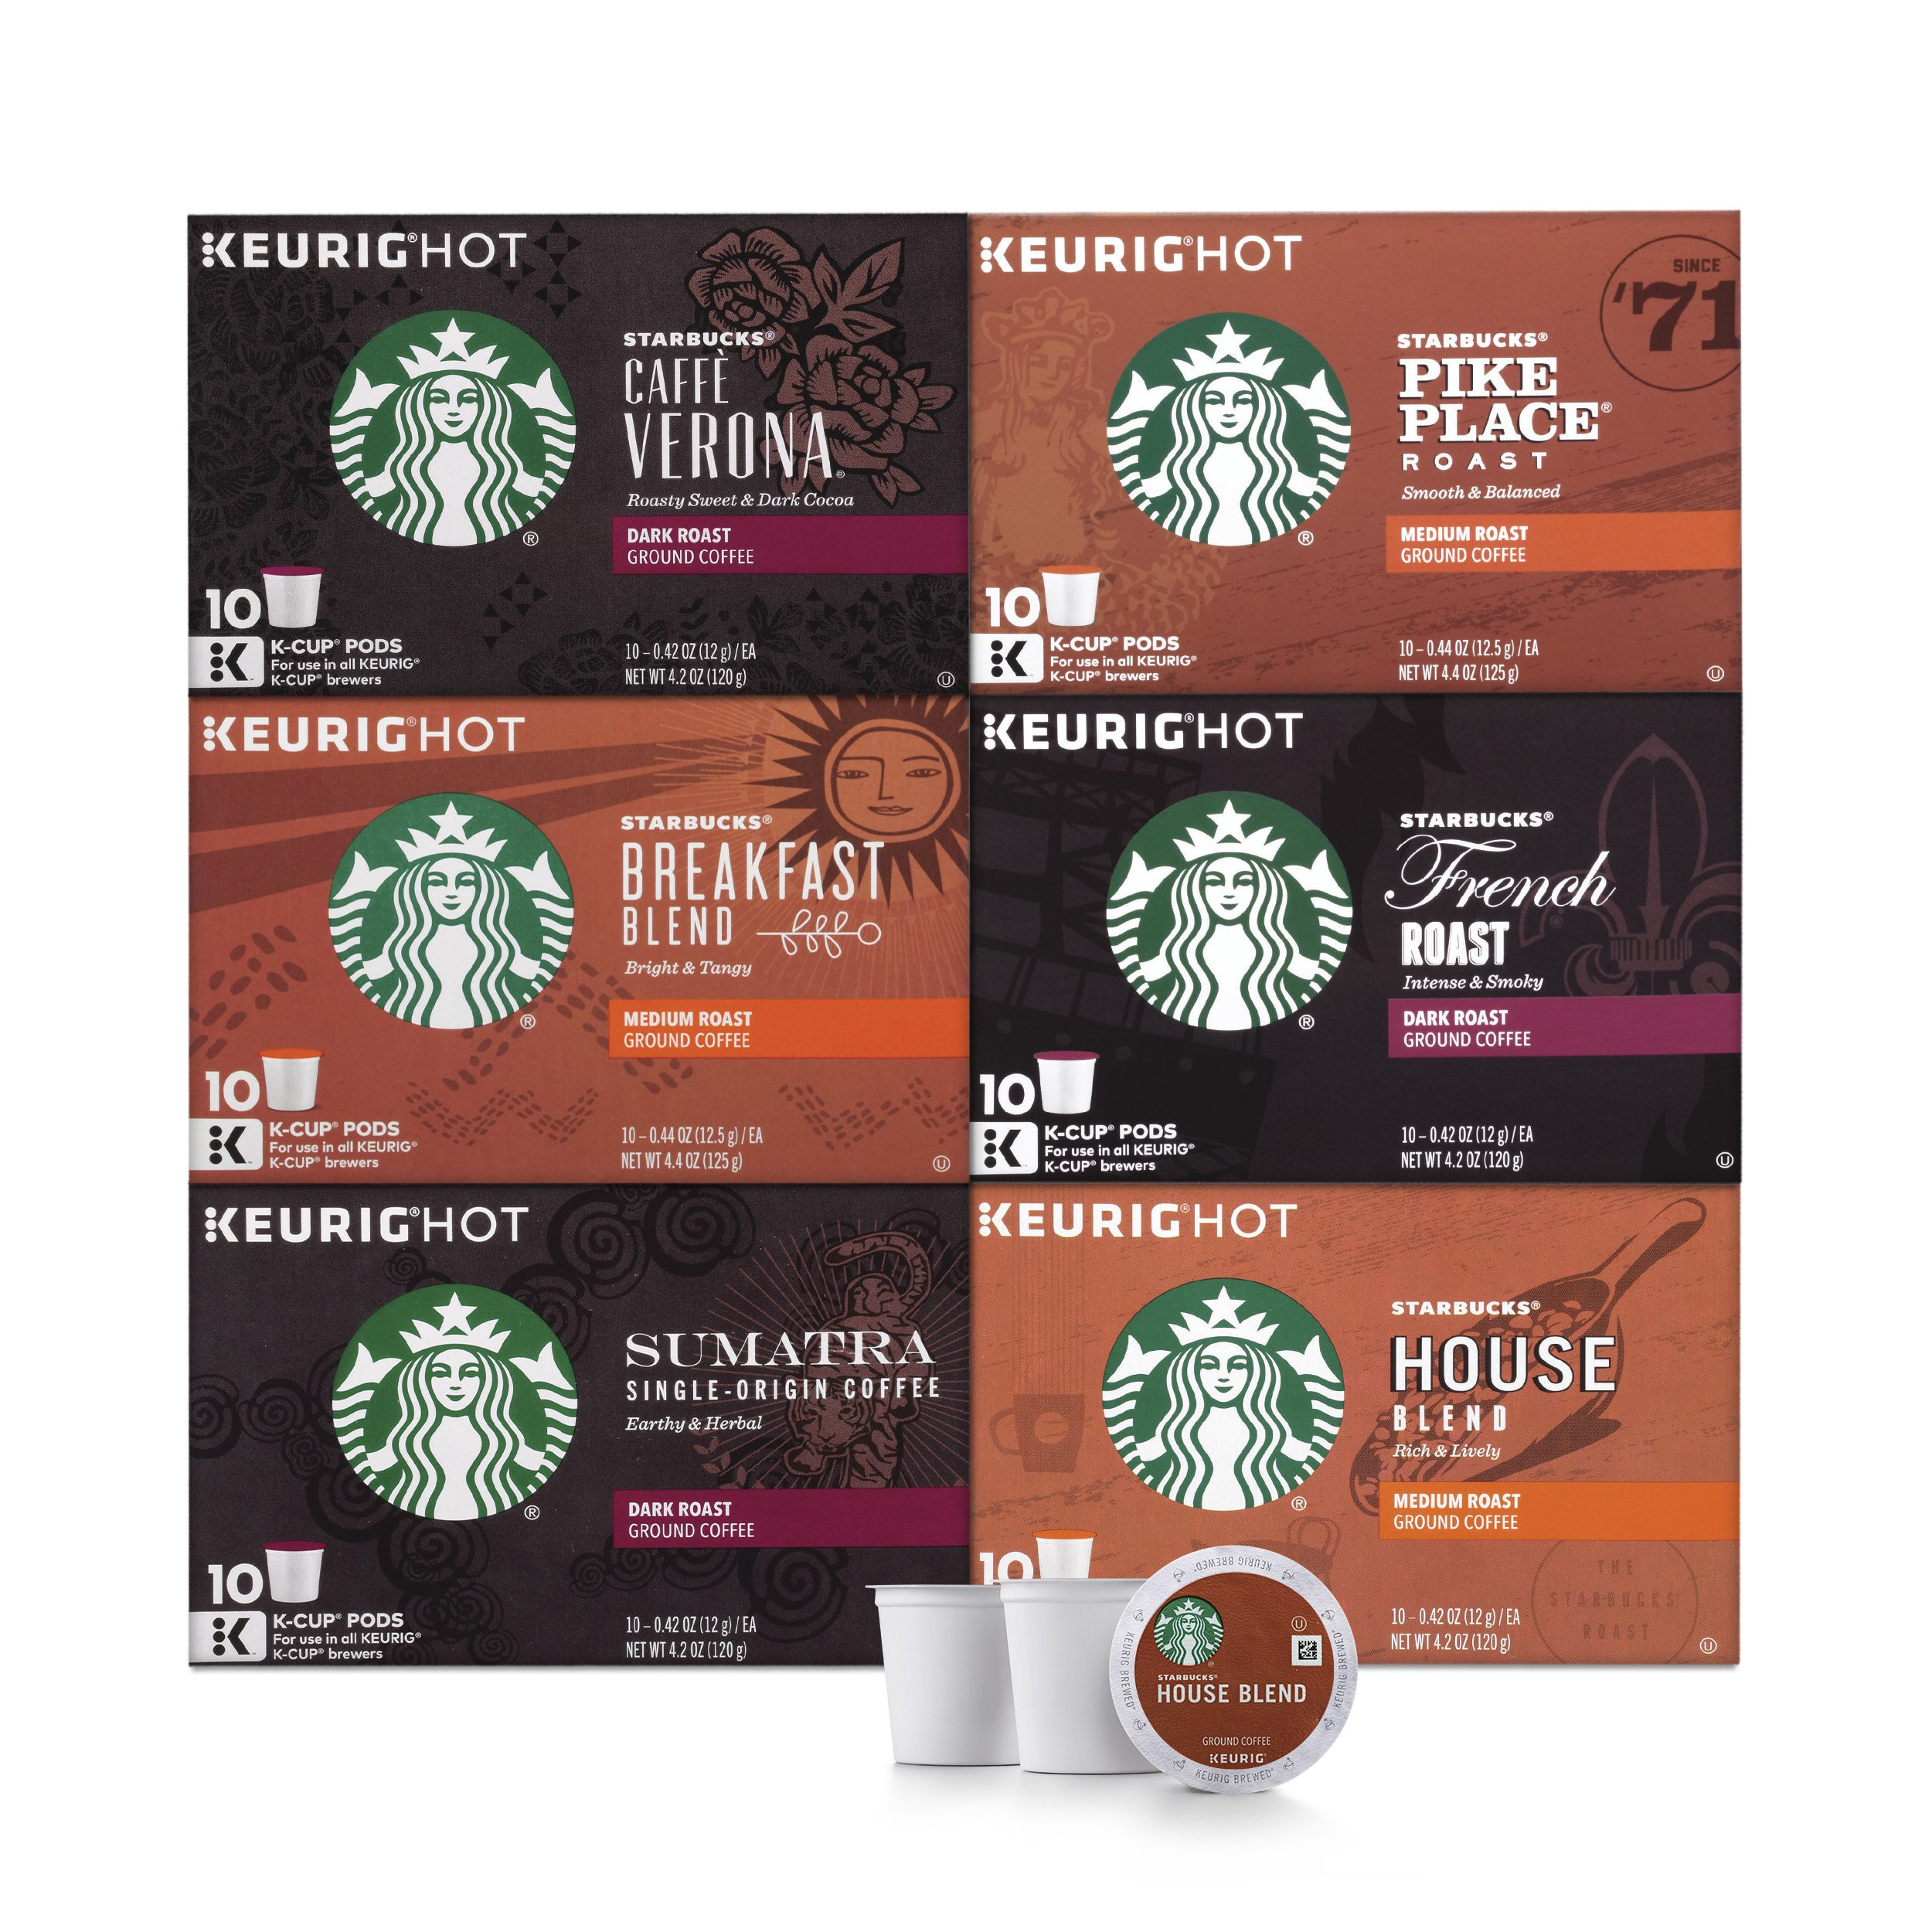 Starbucks Black Coffee K-Cup Variety Pack for Keurig Brewers, 10 Count ( Pack of 6 ) by Starbucks